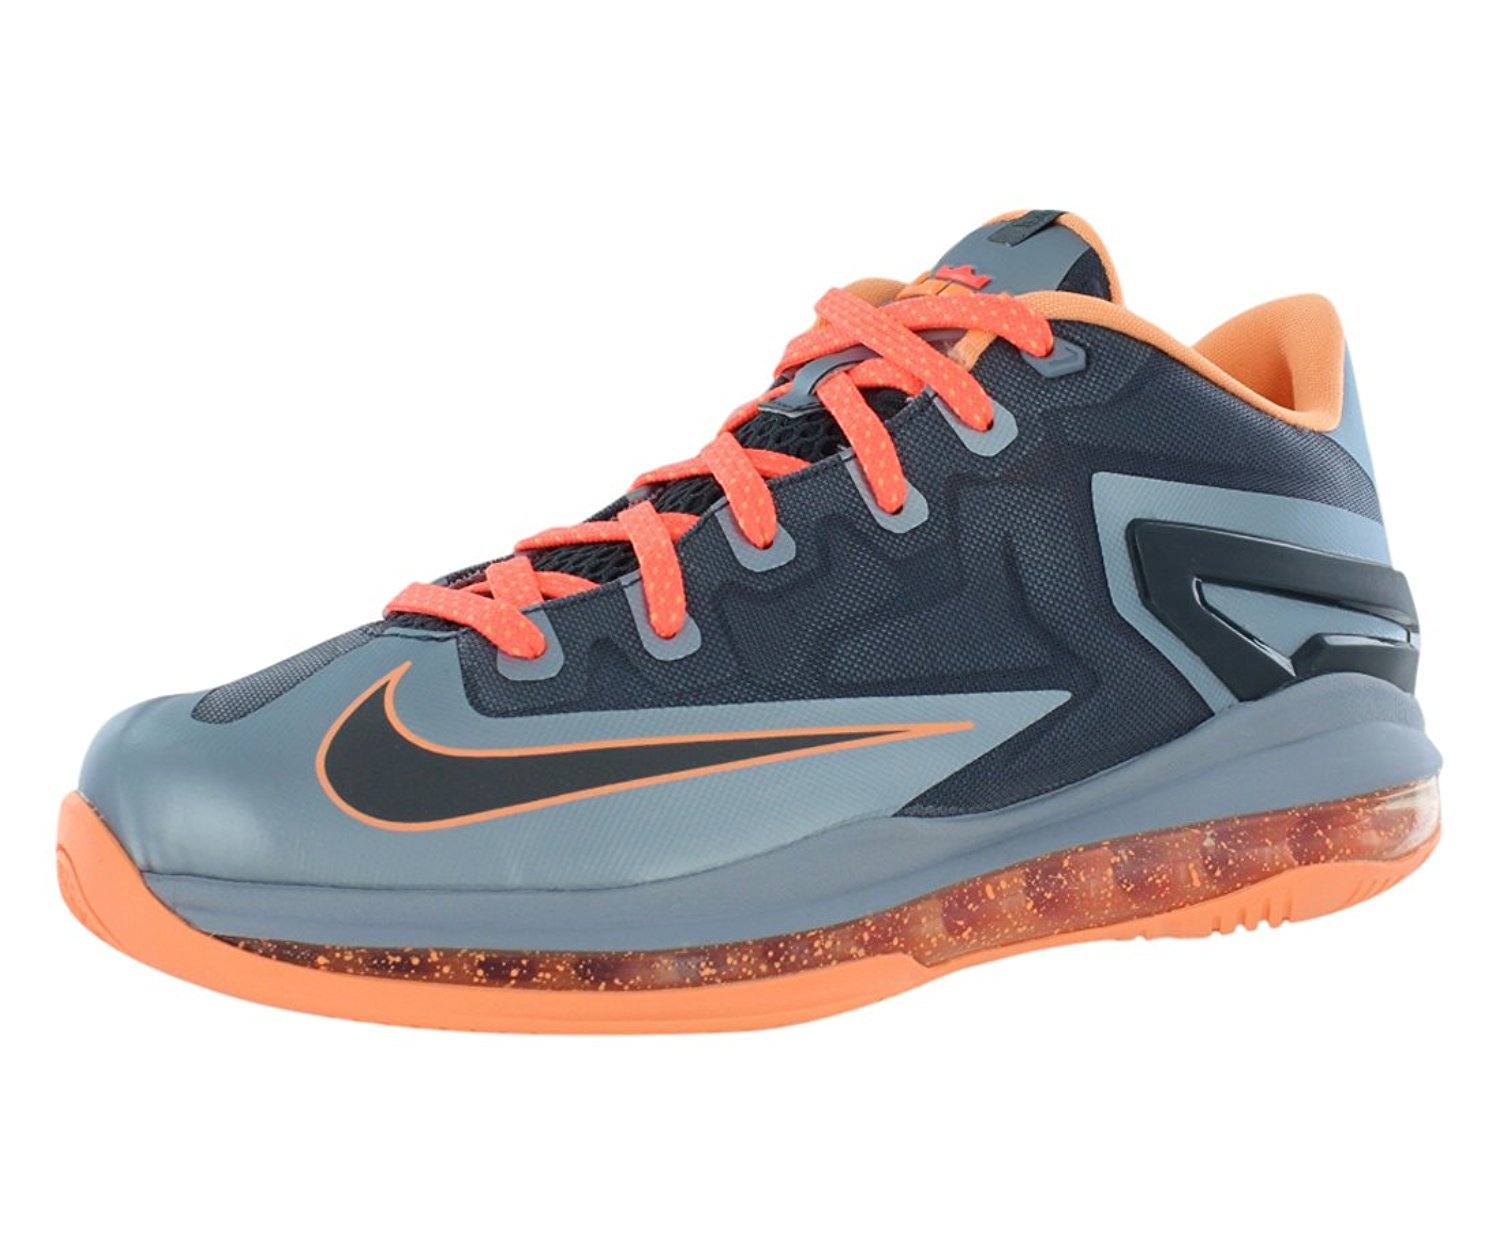 best website bcb62 6d298 Get Quotations · Nike Air Max Lebron XI Low (GS) Boys Basketball Shoes  644534-004 Black